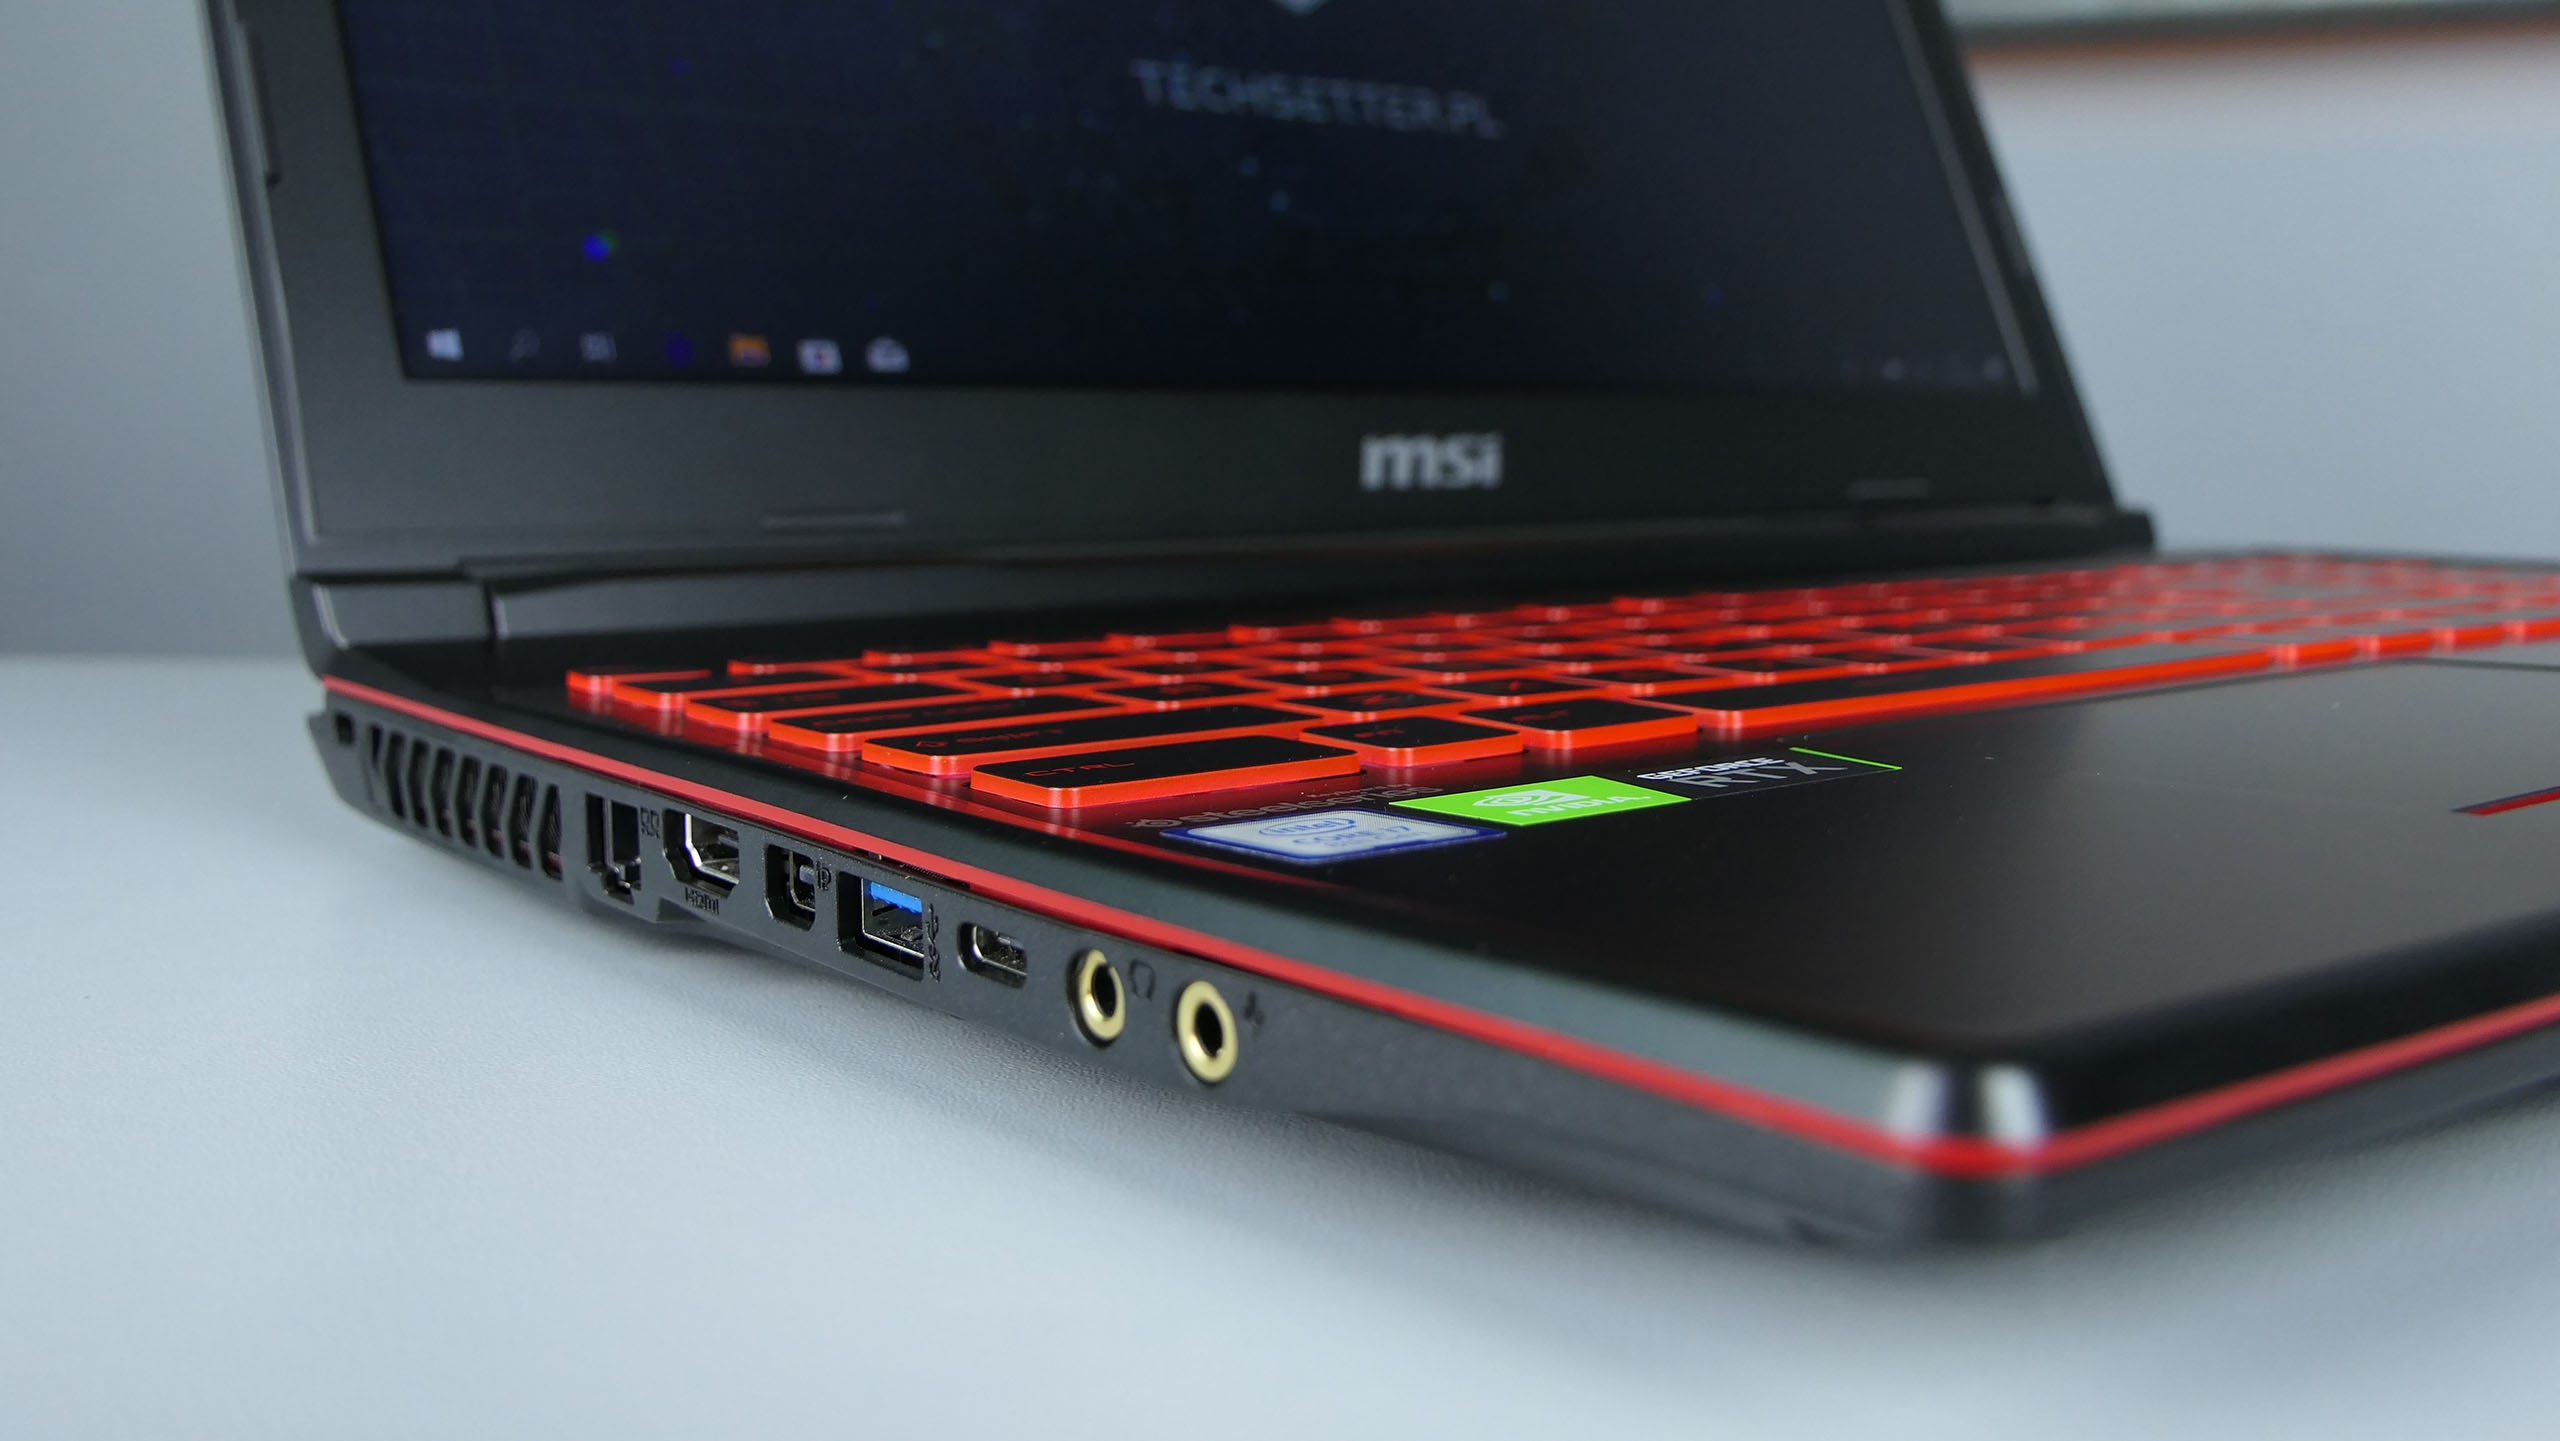 MSI GL63 8RF - LAN, HDMI, mini-DP, USB 3.0, USB 3.1 typu C, gniazda audio